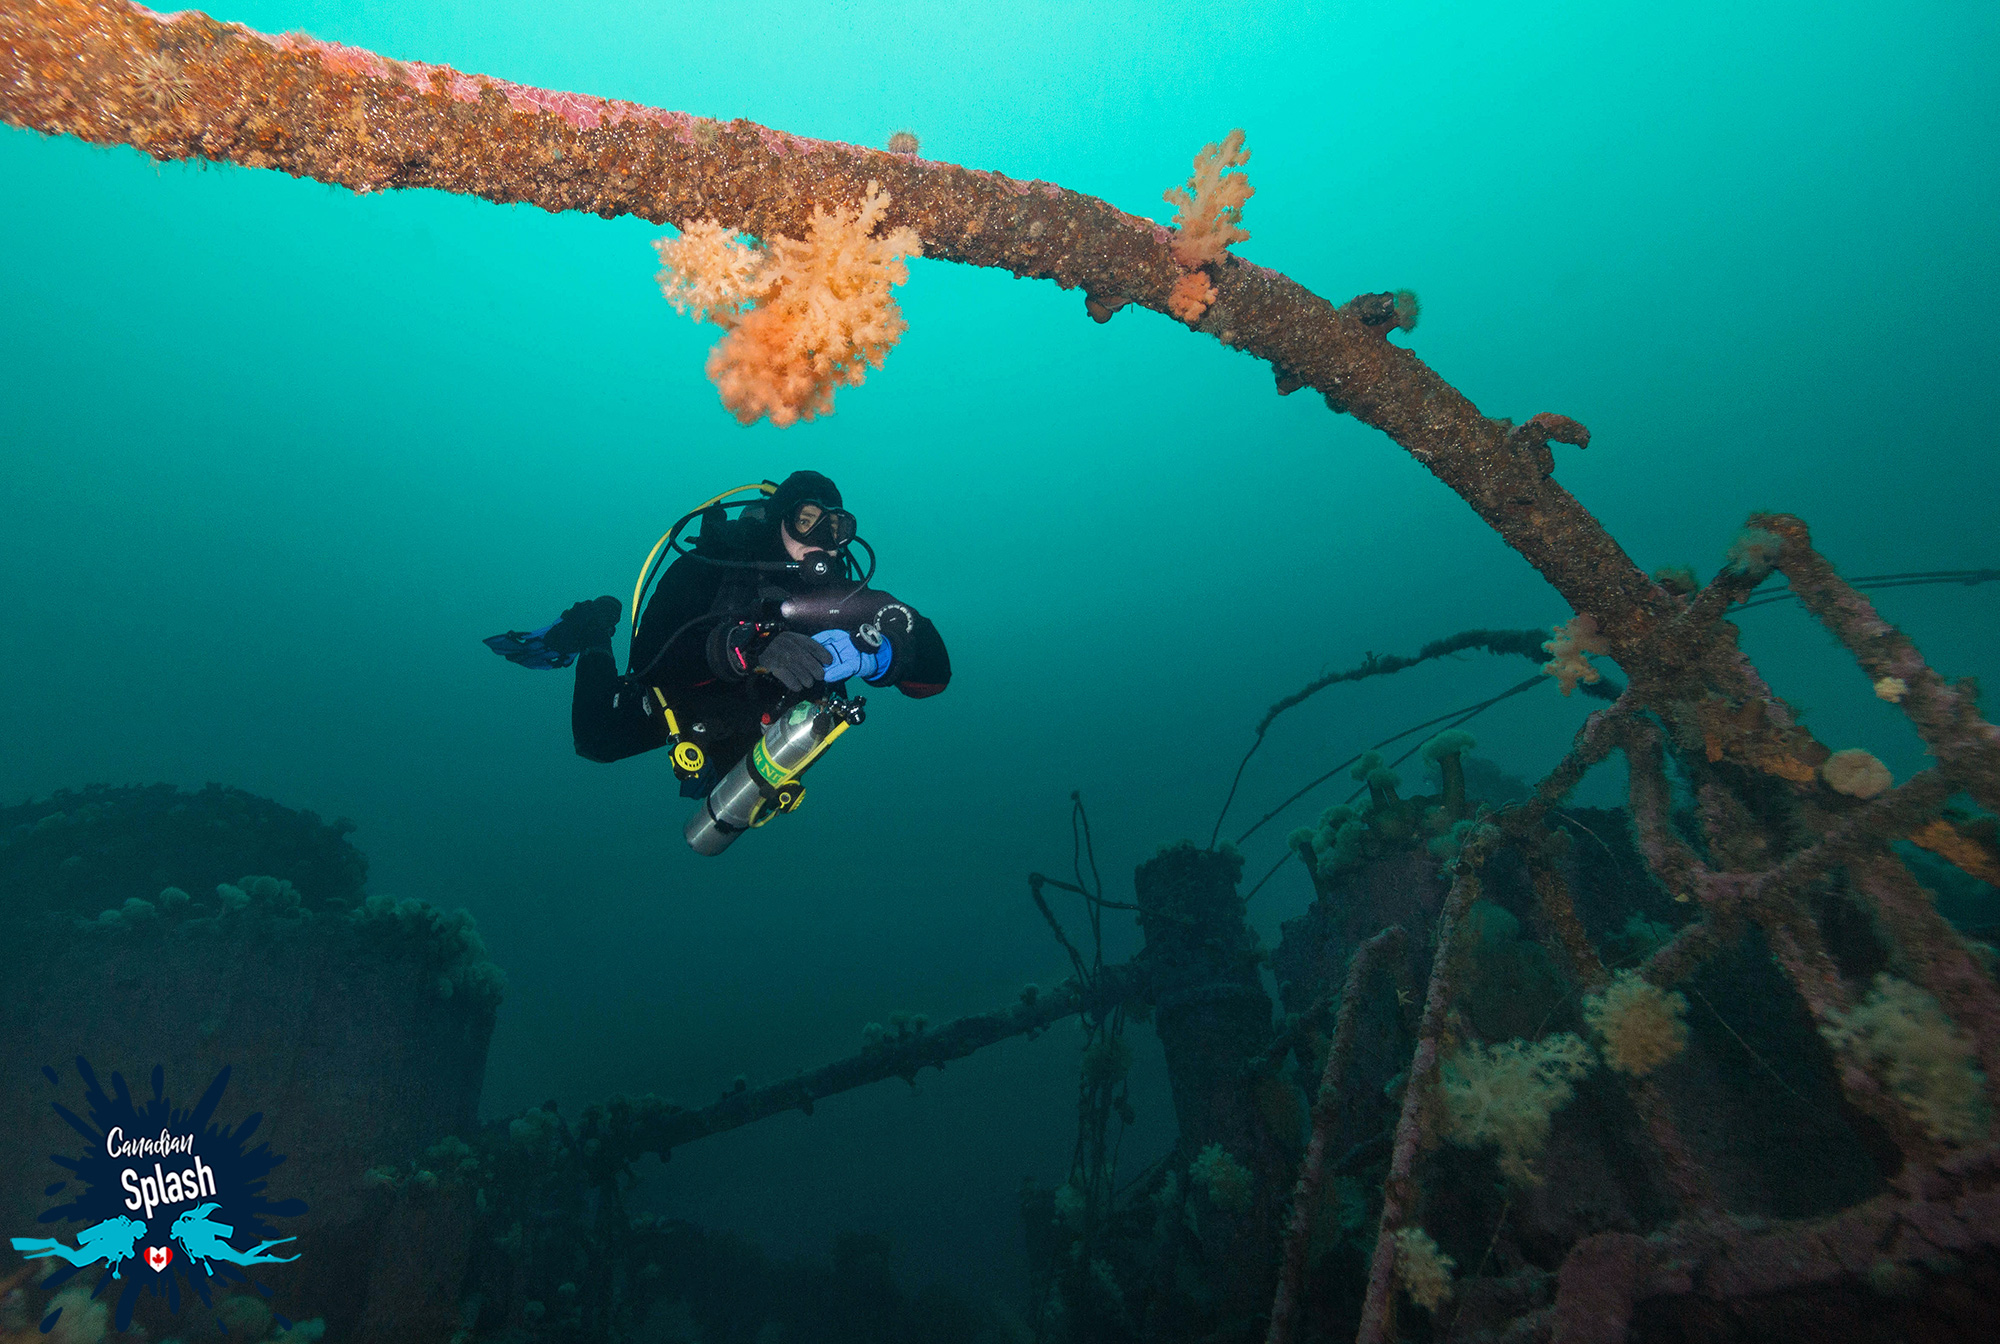 Scuba Diving Joey Exploring Above A Bell Island Shipwreck In Newfoundland, Canadian Splash